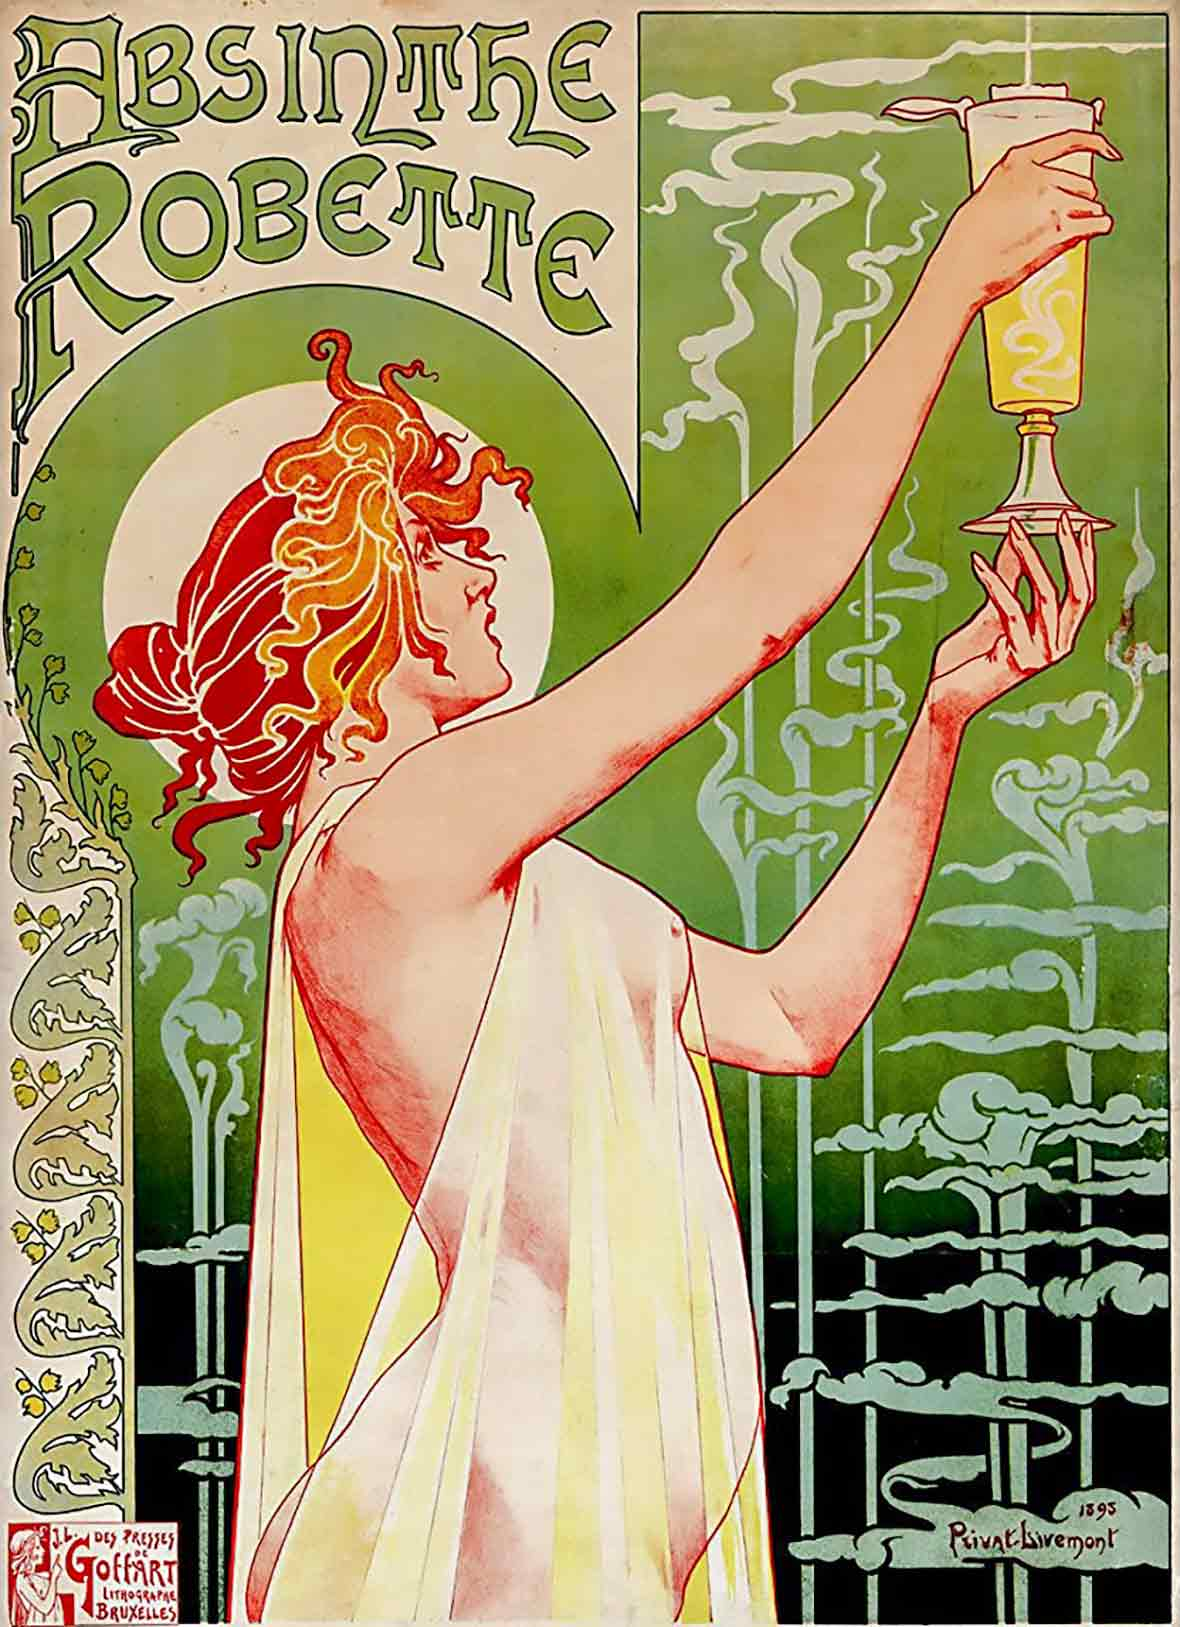 Vintage drawing of a woman holding up a glass of absinthe